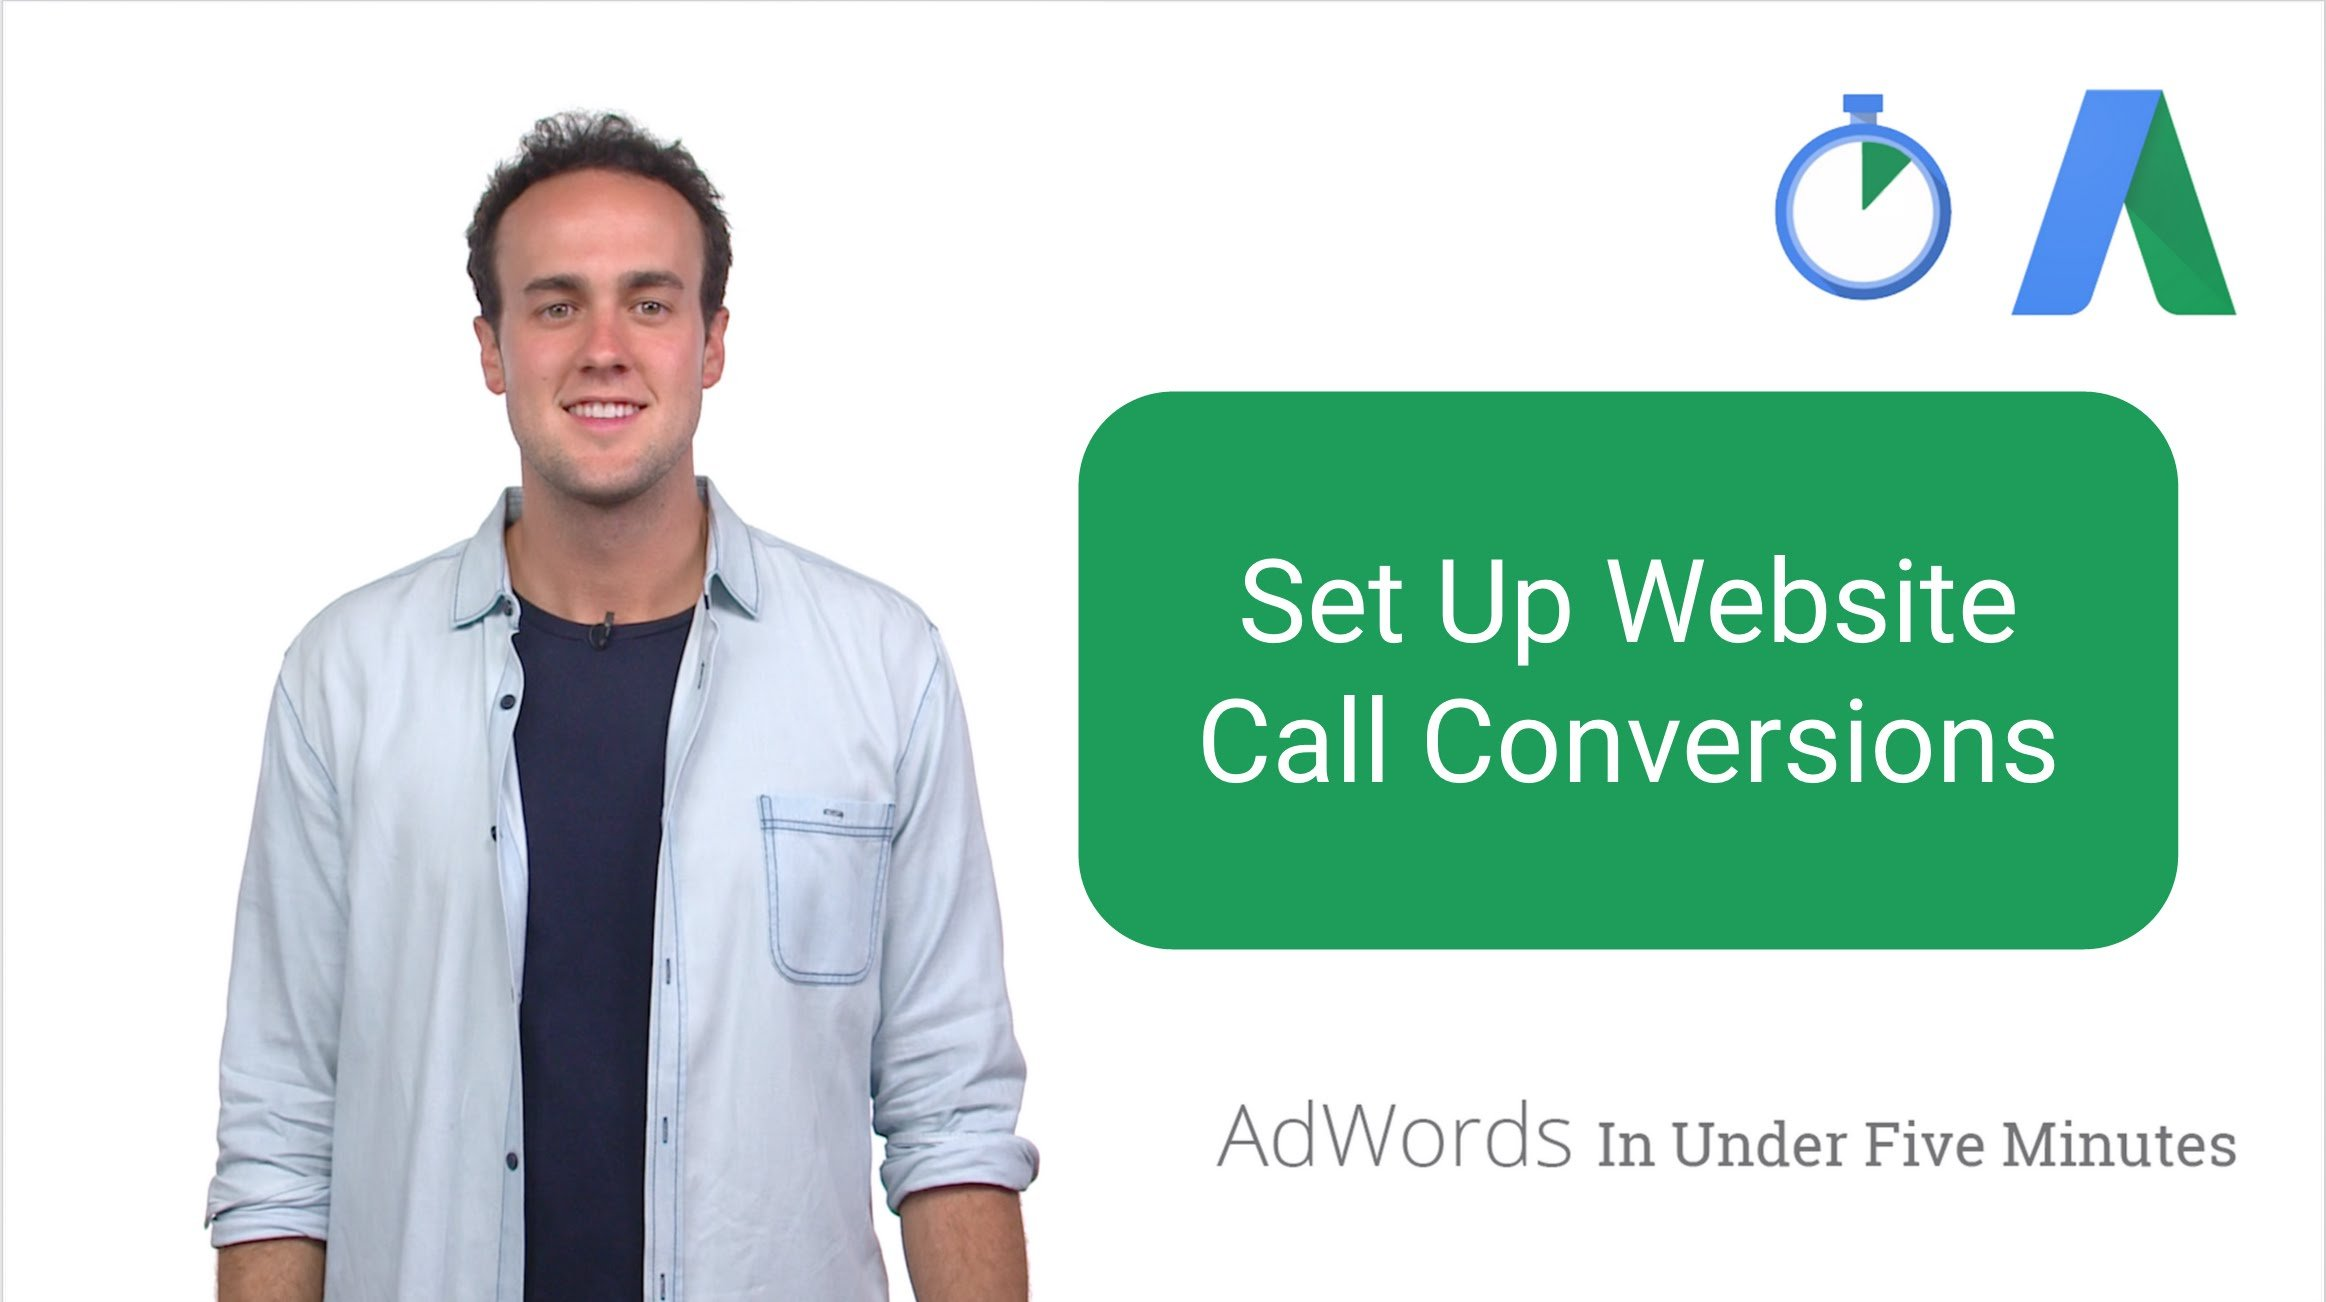 How to: Set Up Website Call Conversions (VIDEO)